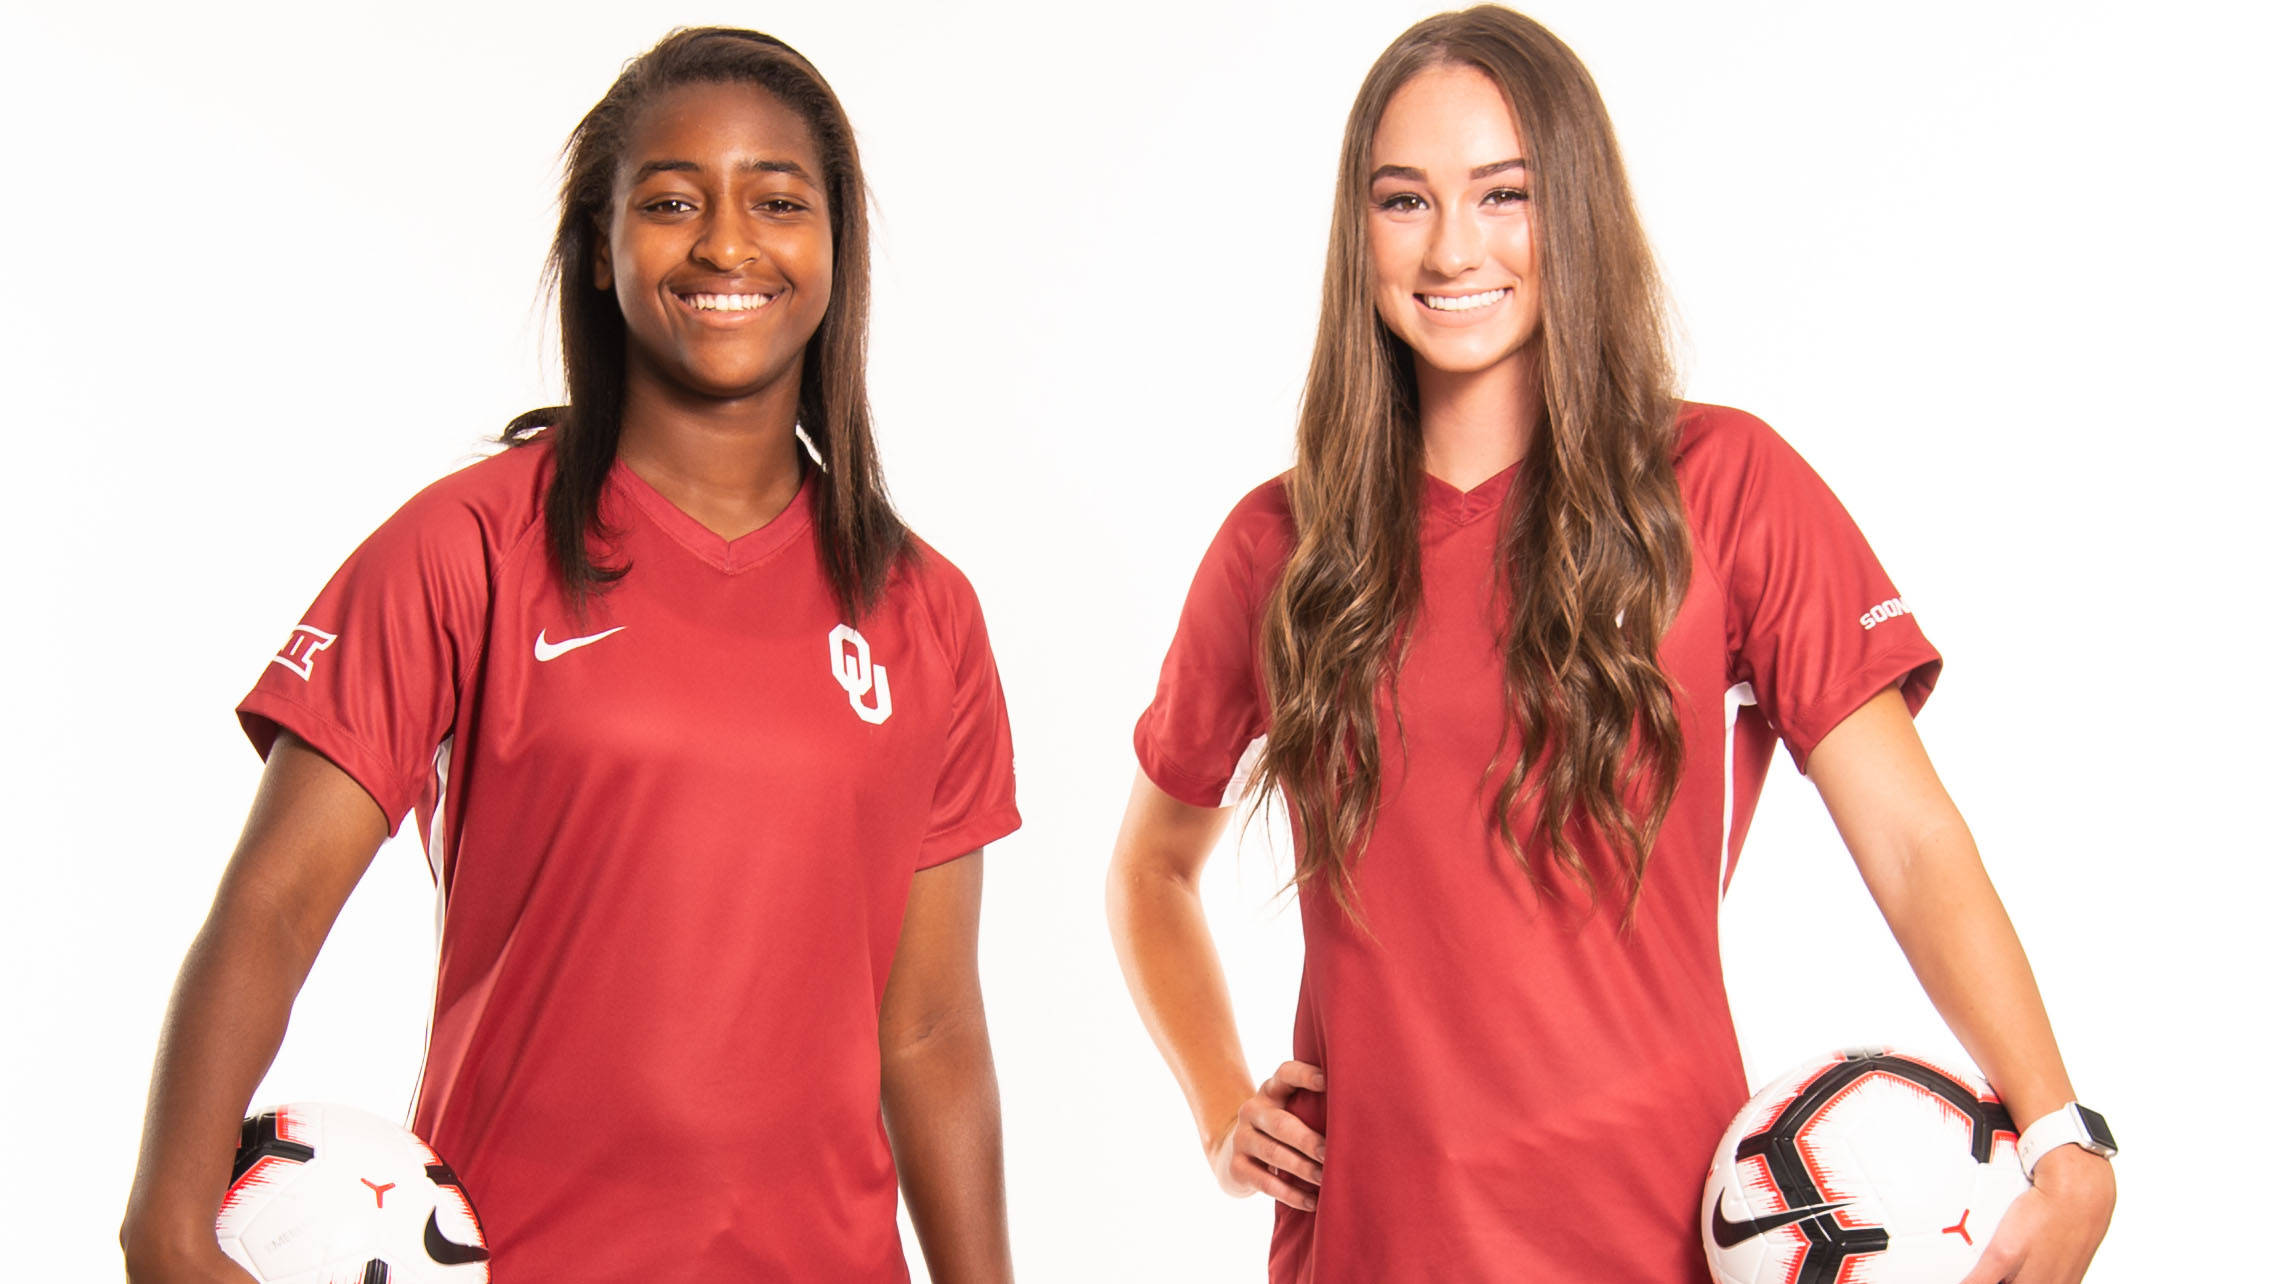 Meet the Freshmen: Forwards – The Official Site of Oklahoma Sooner Sports